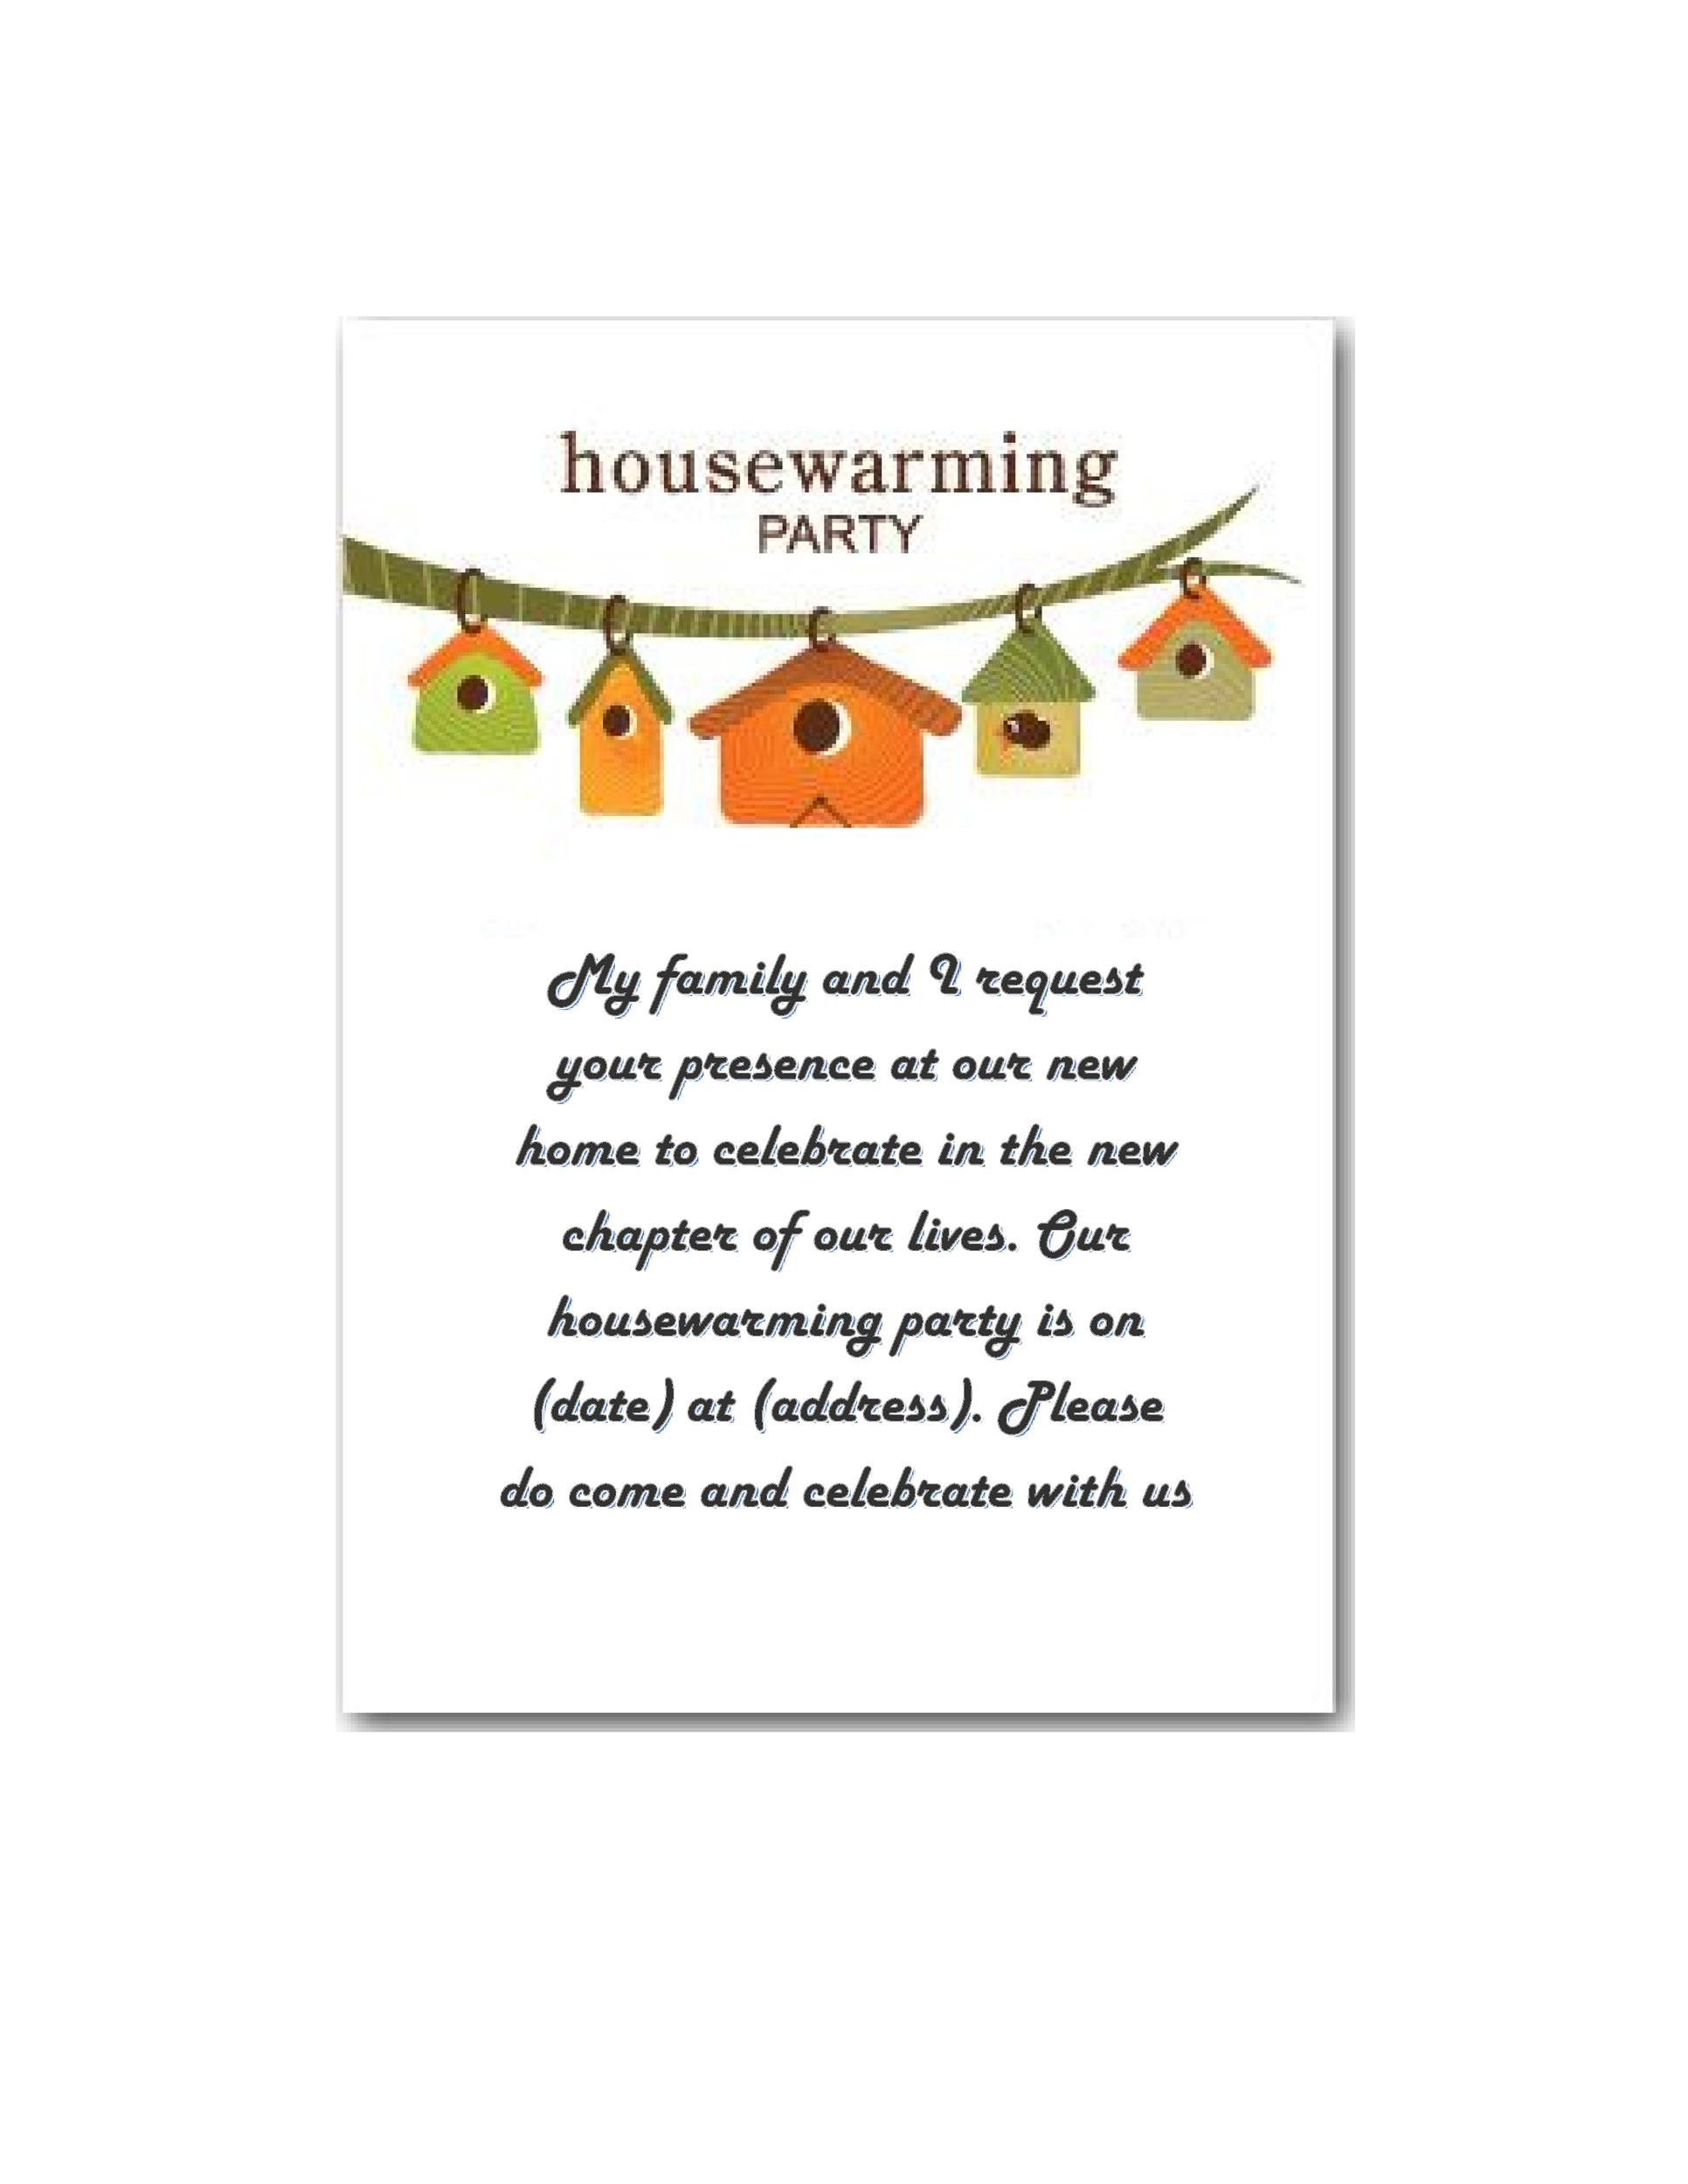 Housewarming party invitations template vatozozdevelopment housewarming party invitations template stopboris Images